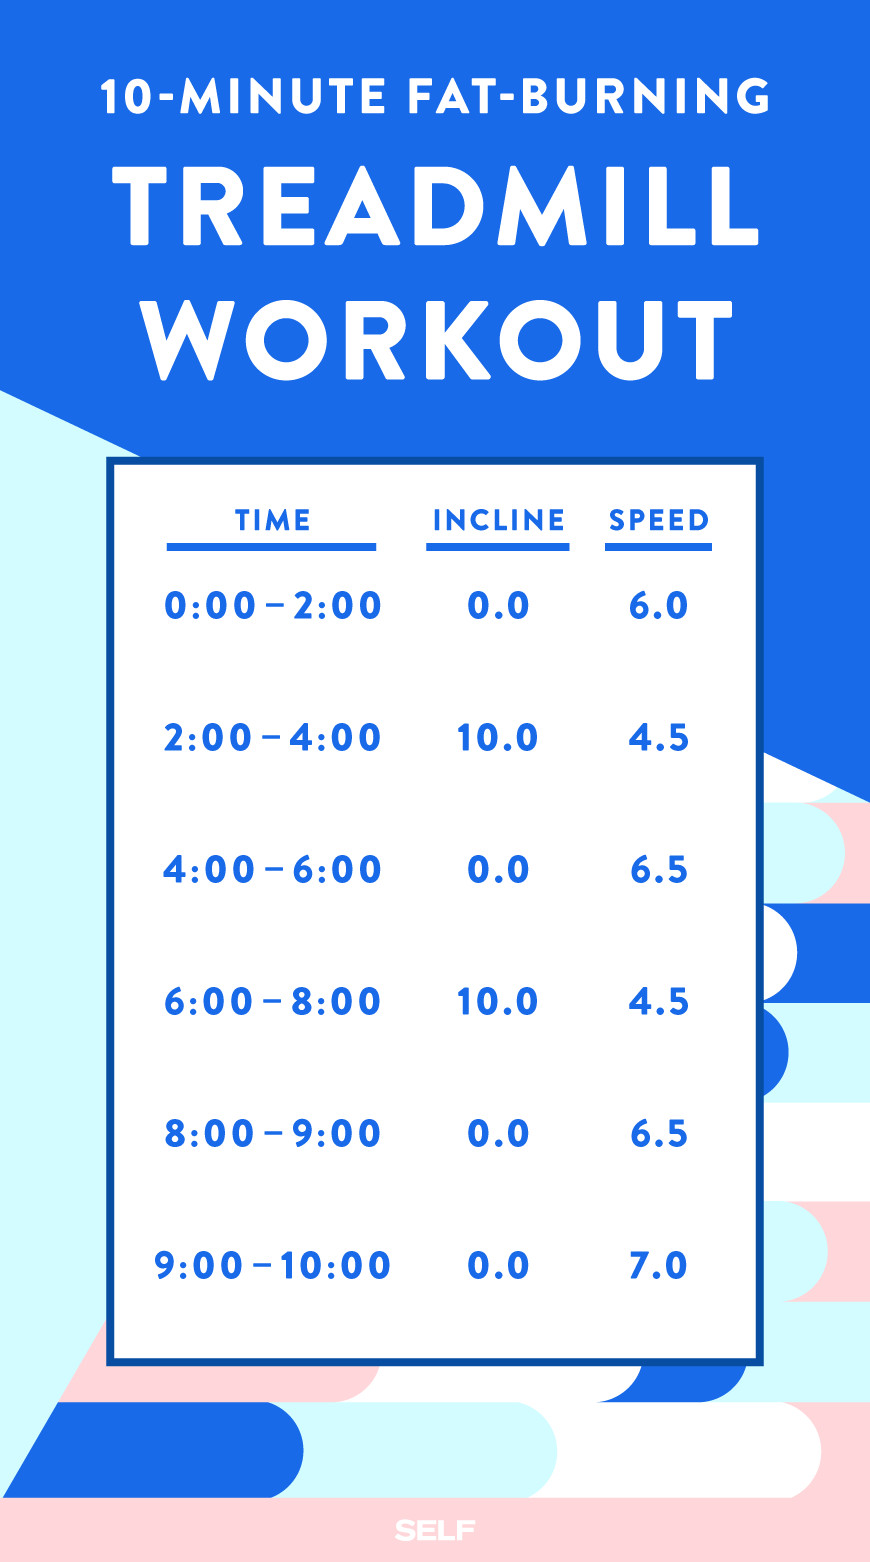 10 Minute Fat Burning Workout  Try e These 10 Minute Cardio Workouts For A Quick